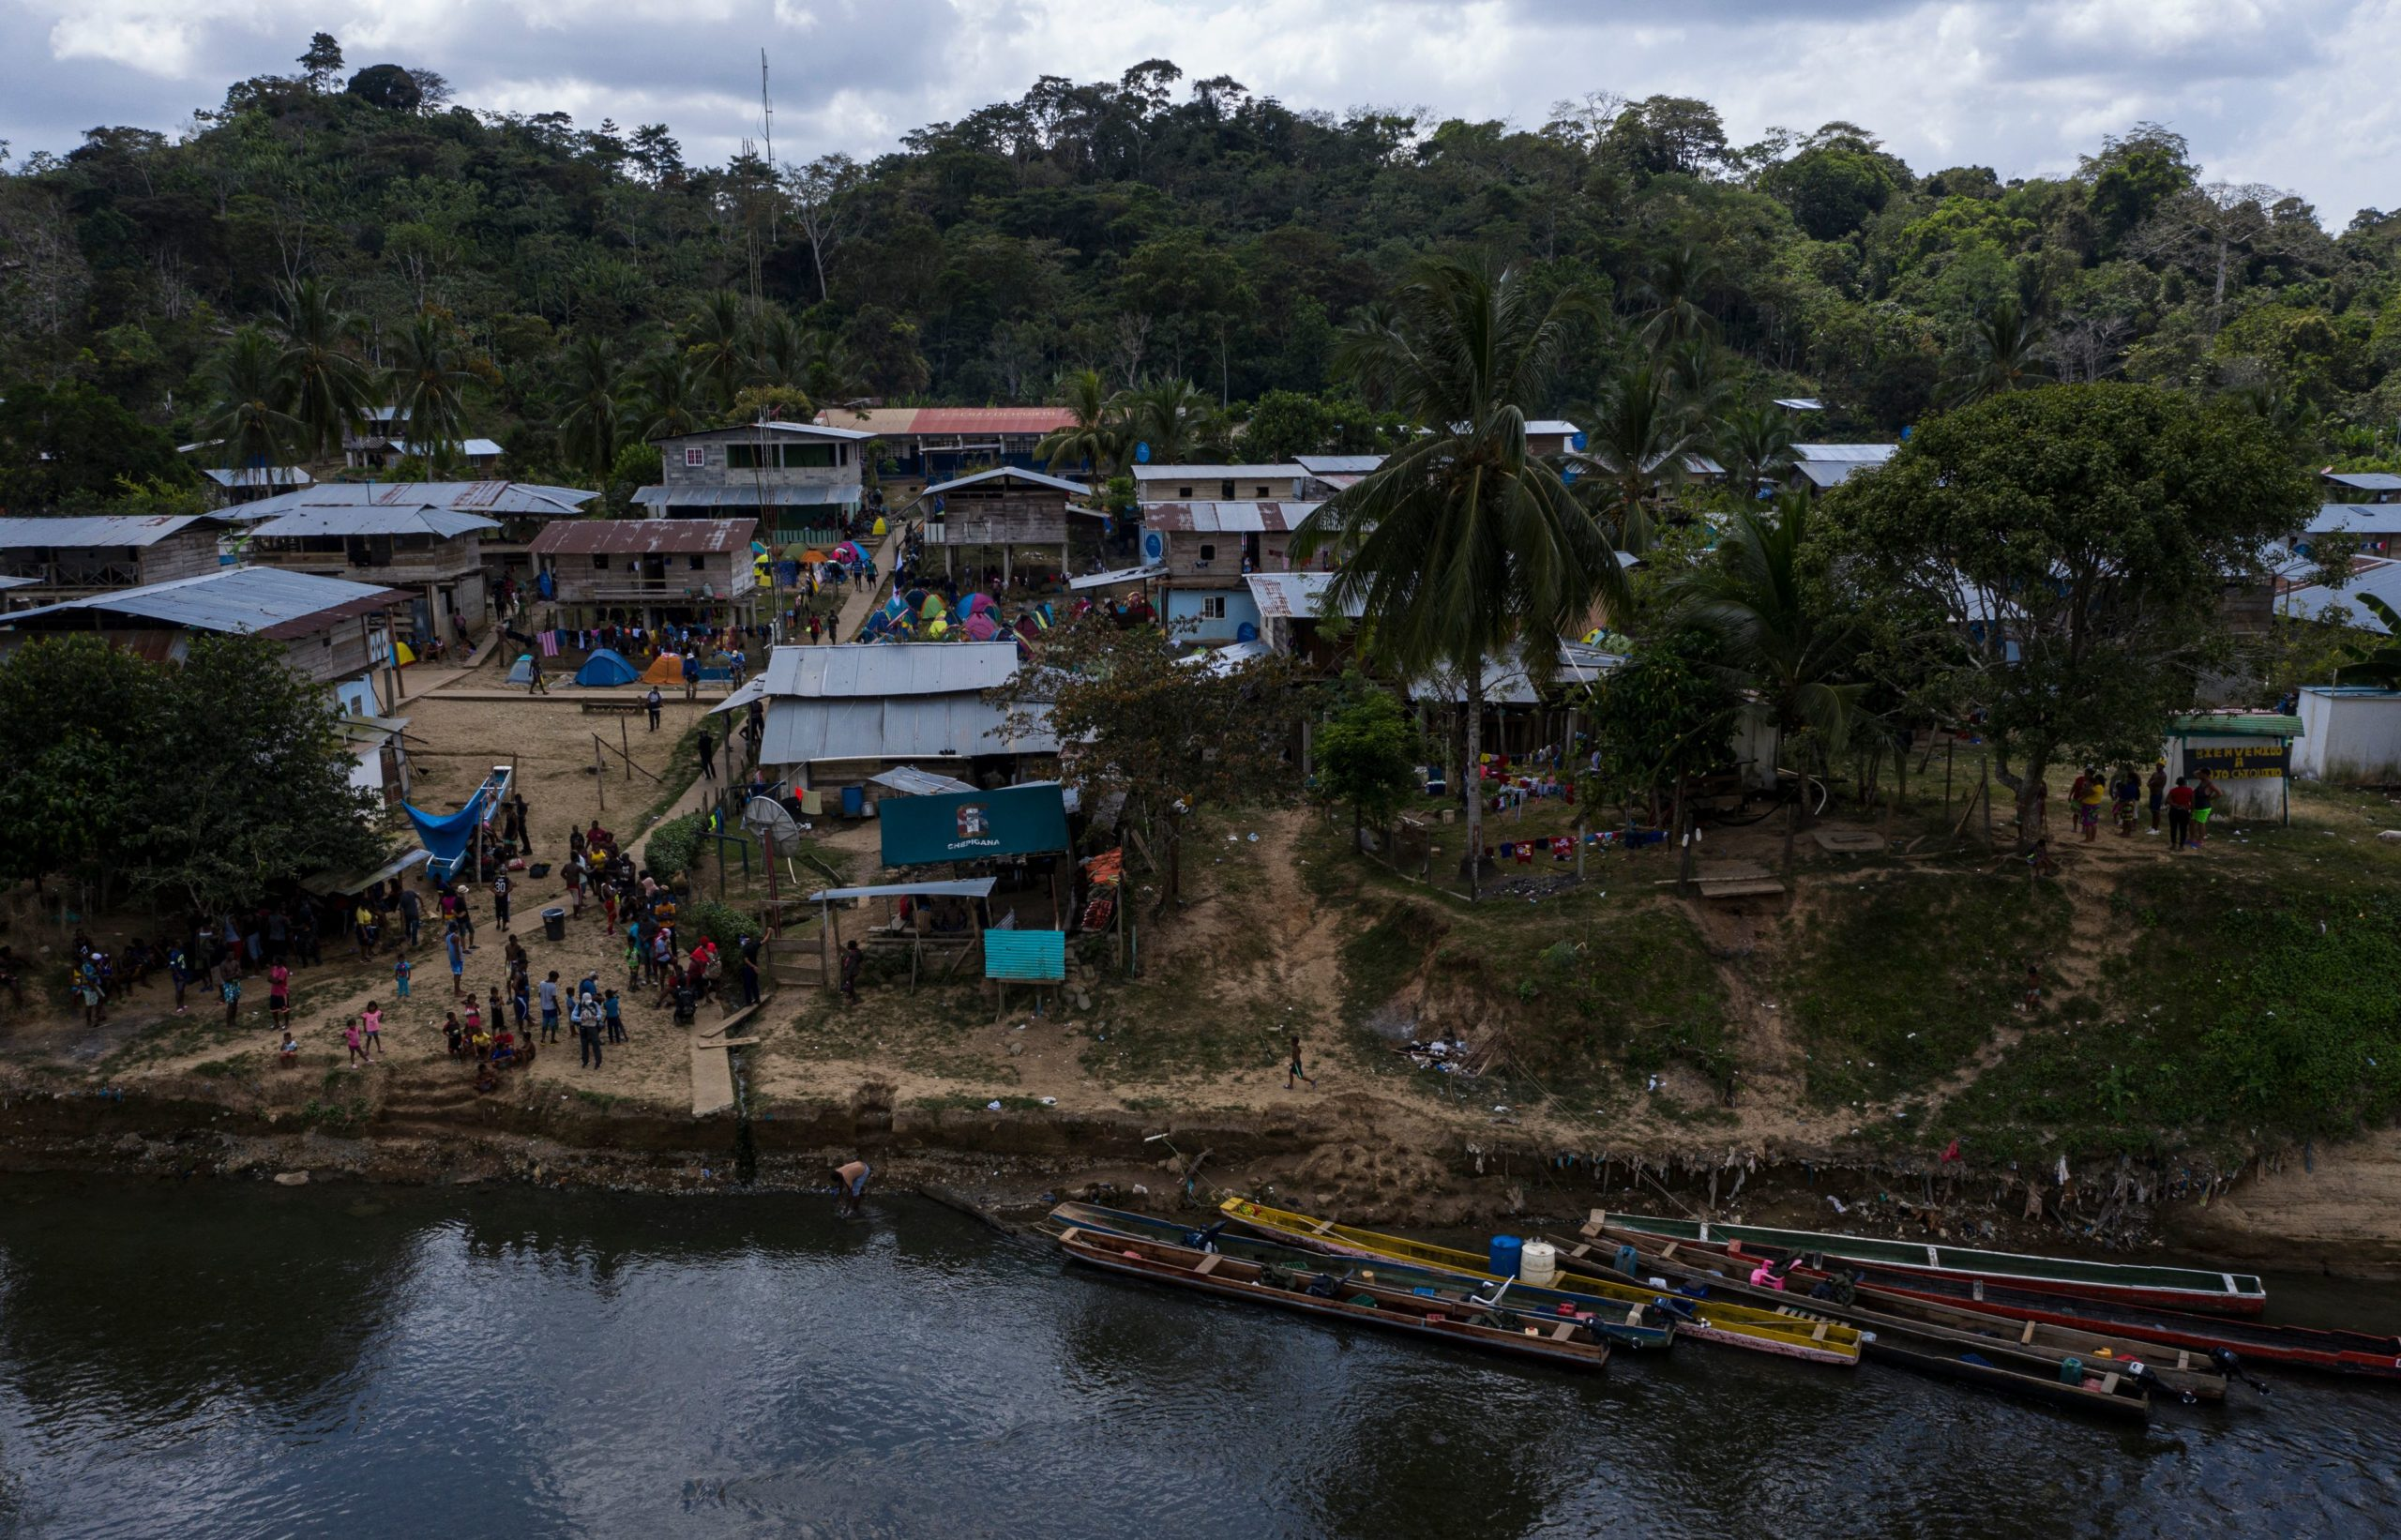 Aerial view of a migrant camp in Bajo Chiquito village, Darien province, Panama on February 10, 2021. (Photo by LUIS ACOSTA/AFP via Getty Images)